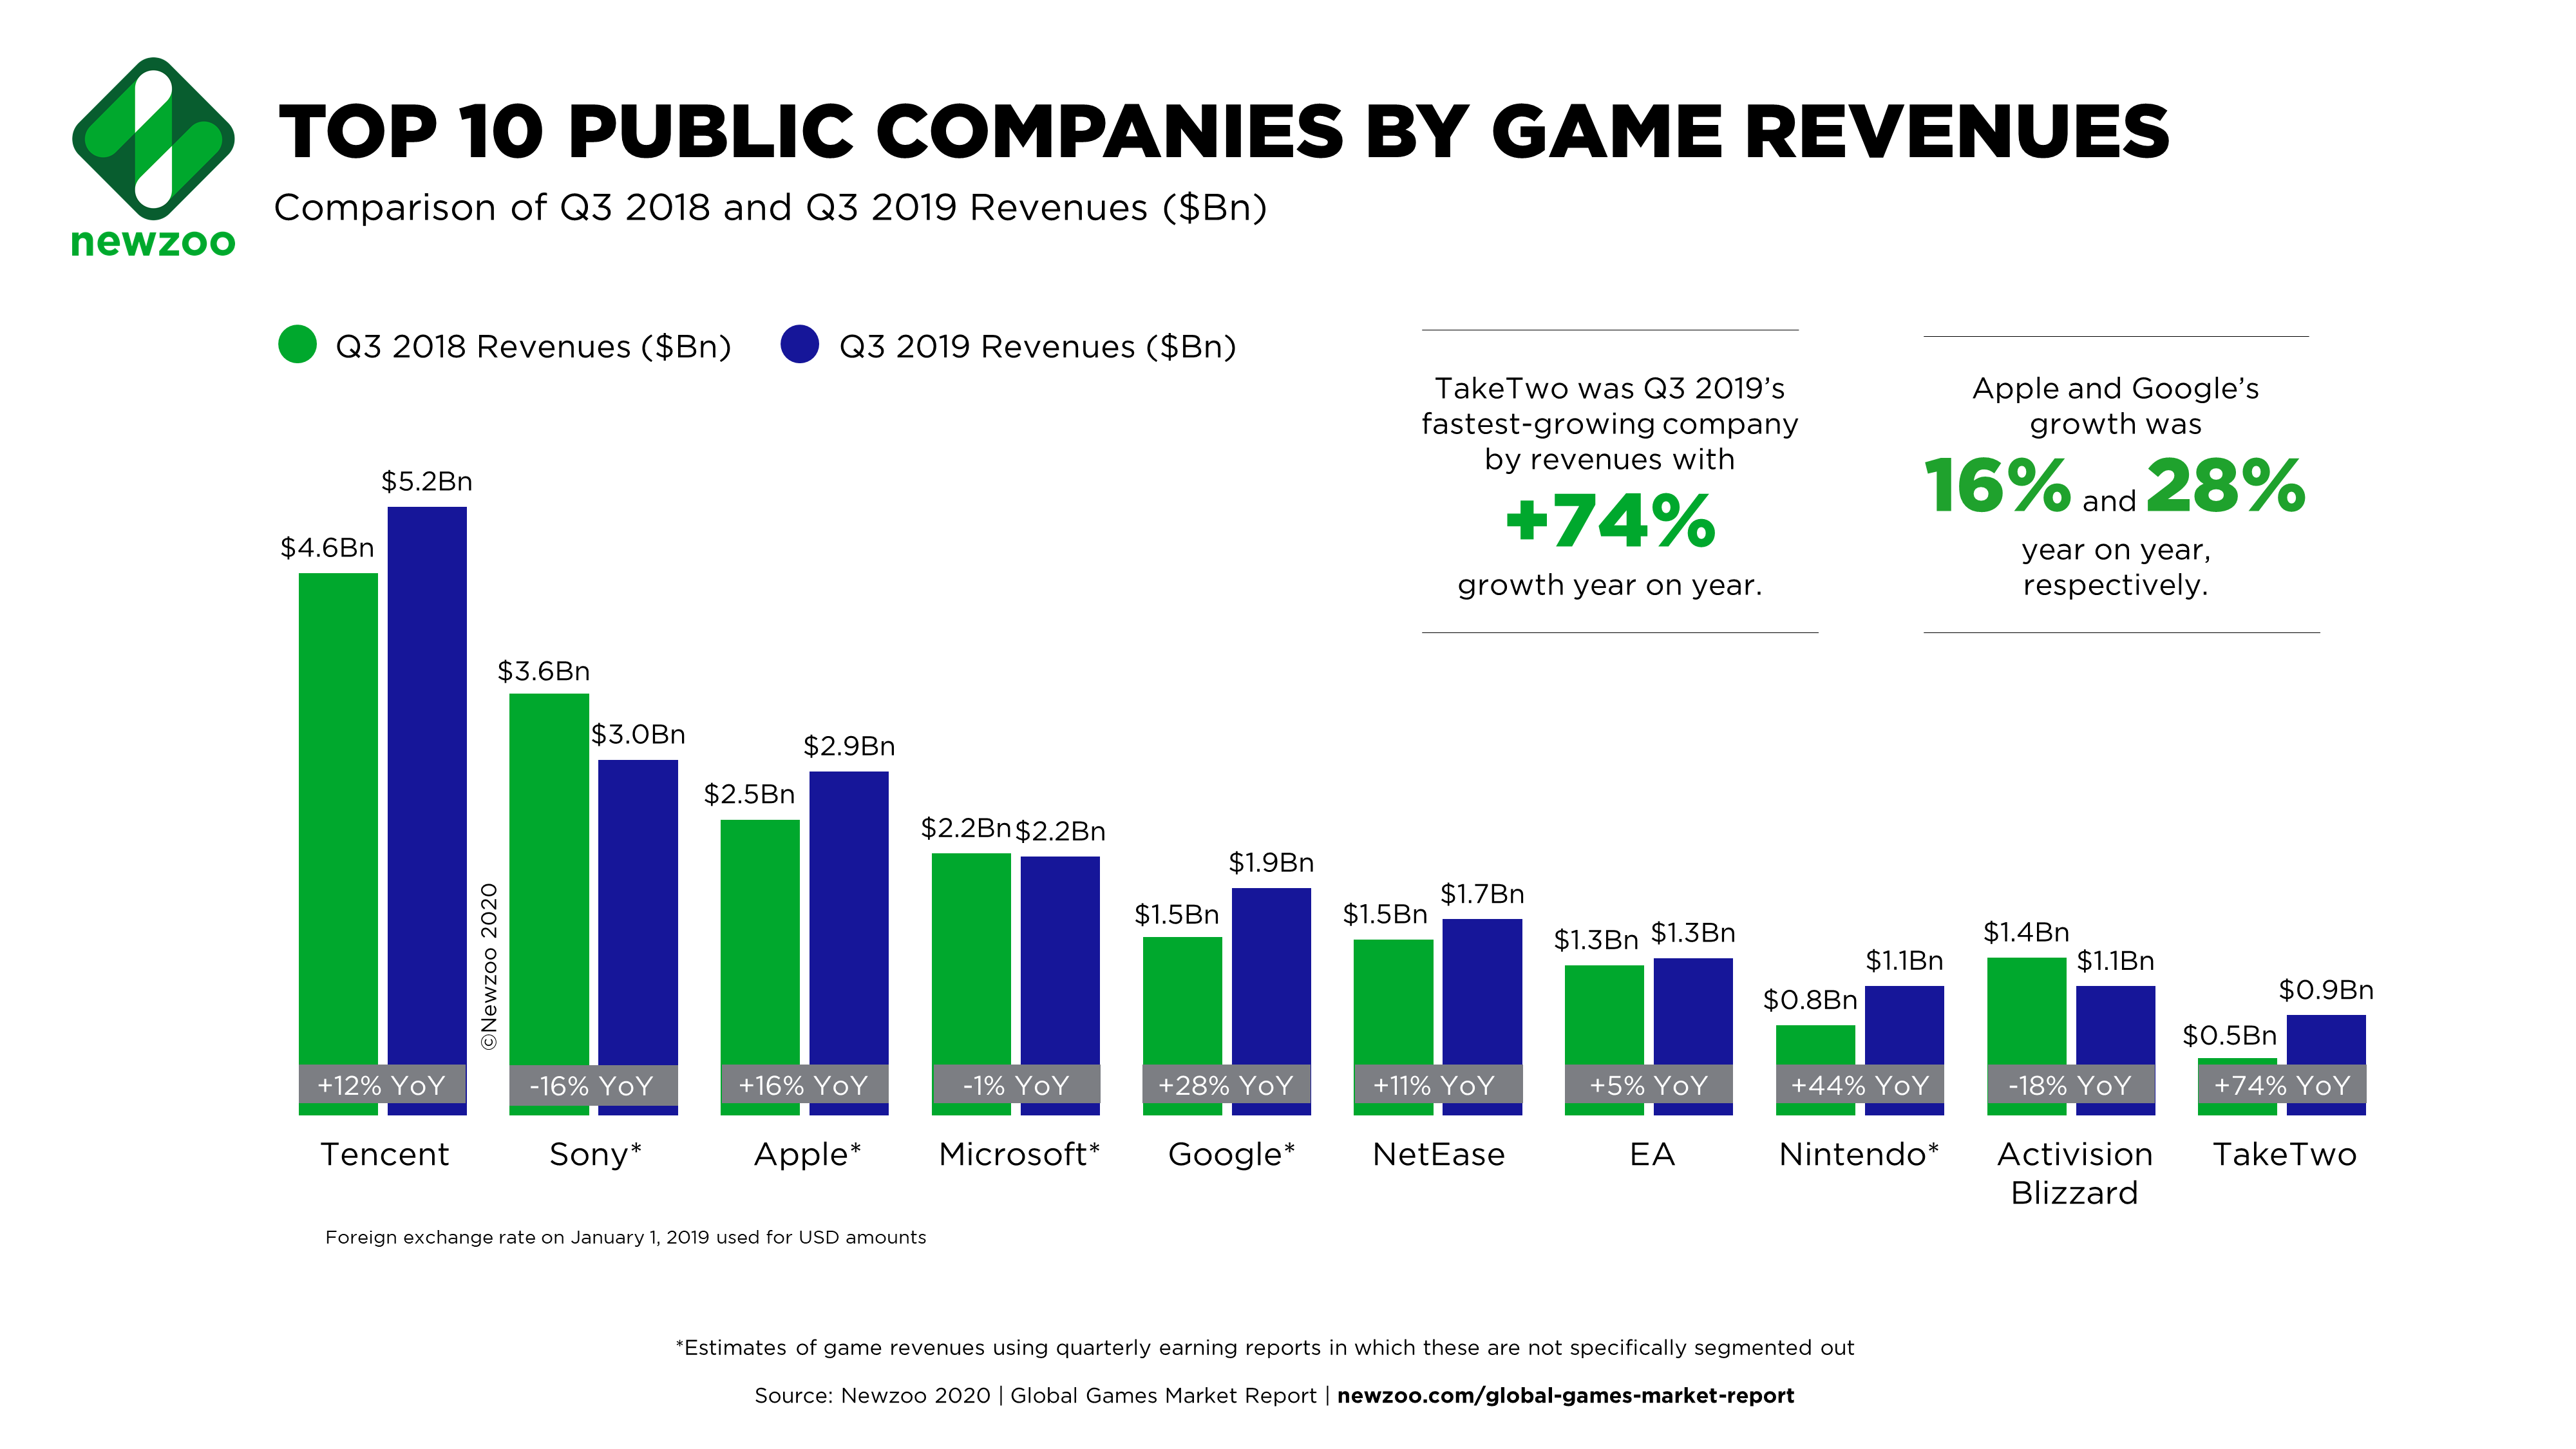 Top 10 Public Game Companies by Revenues